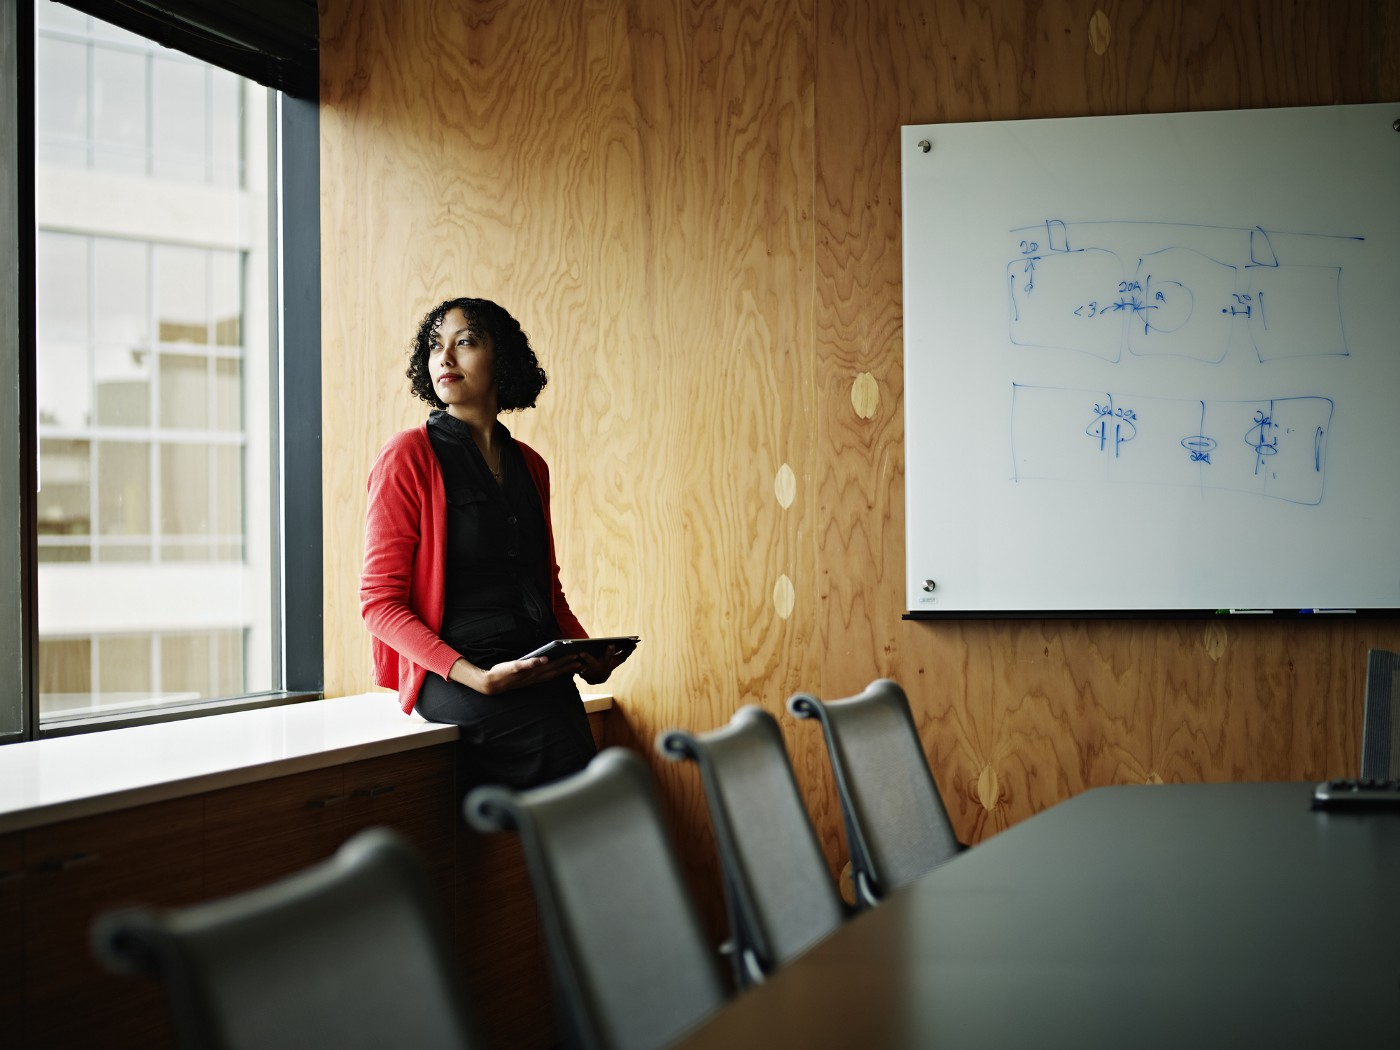 Businesswoman sitting near windows in office conference room holding digital tablet looking out.